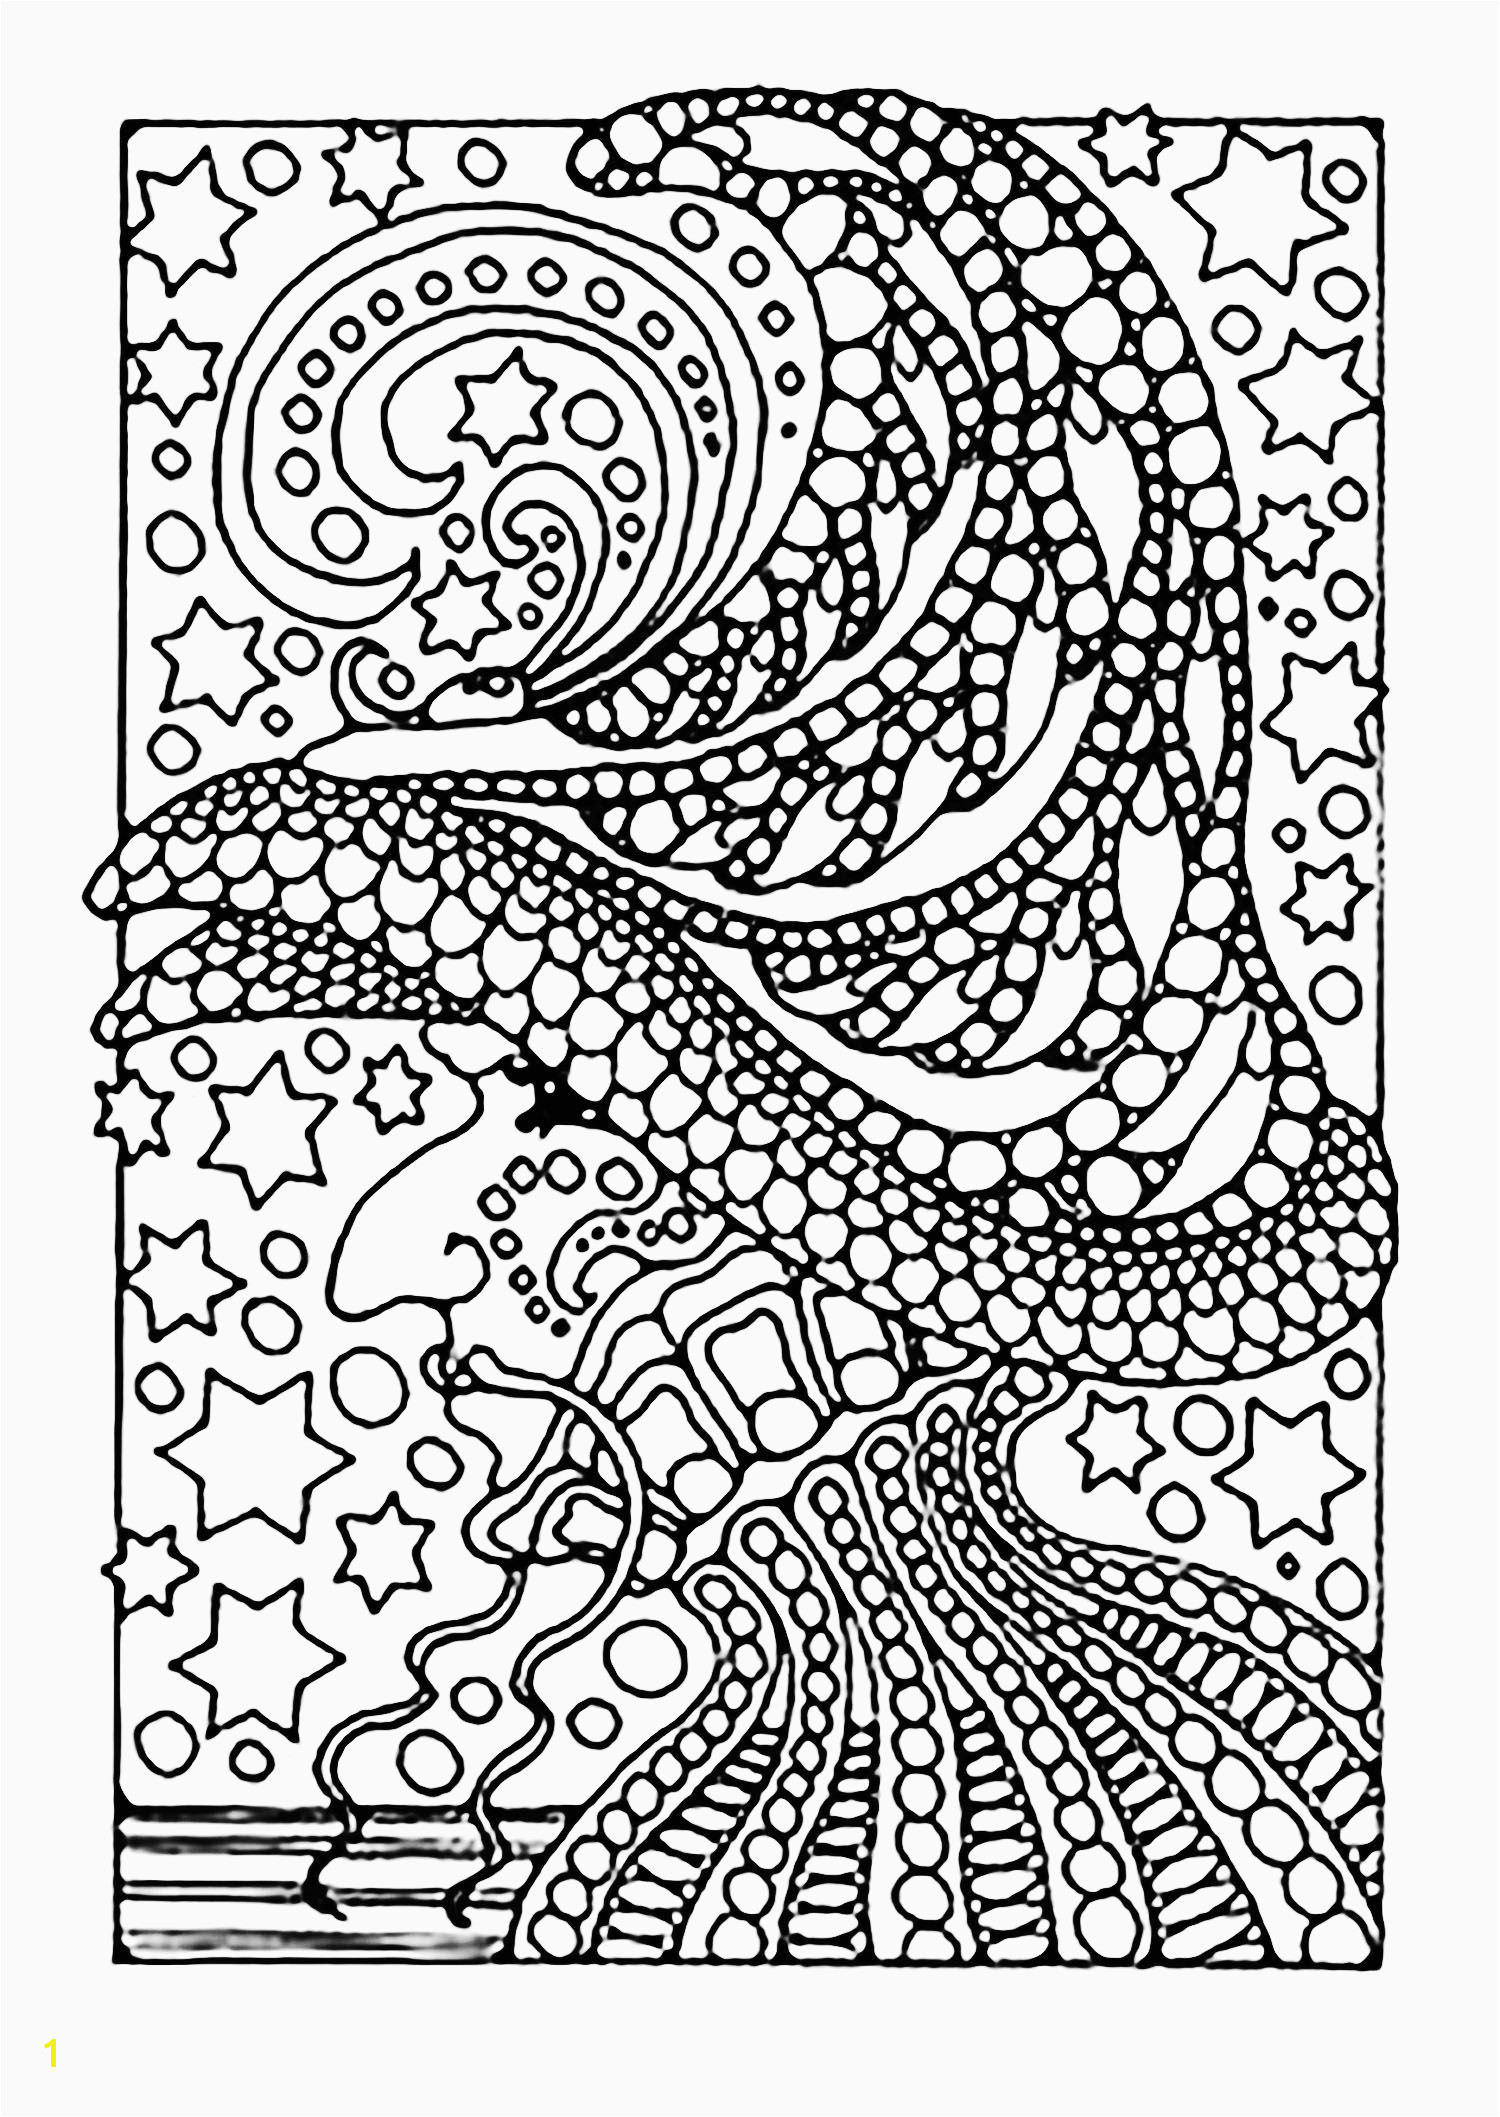 Free Teenage Coloring Pages Fresh Cool Coloring Page Unique Witch Coloring Pages New Crayola Pages 0d